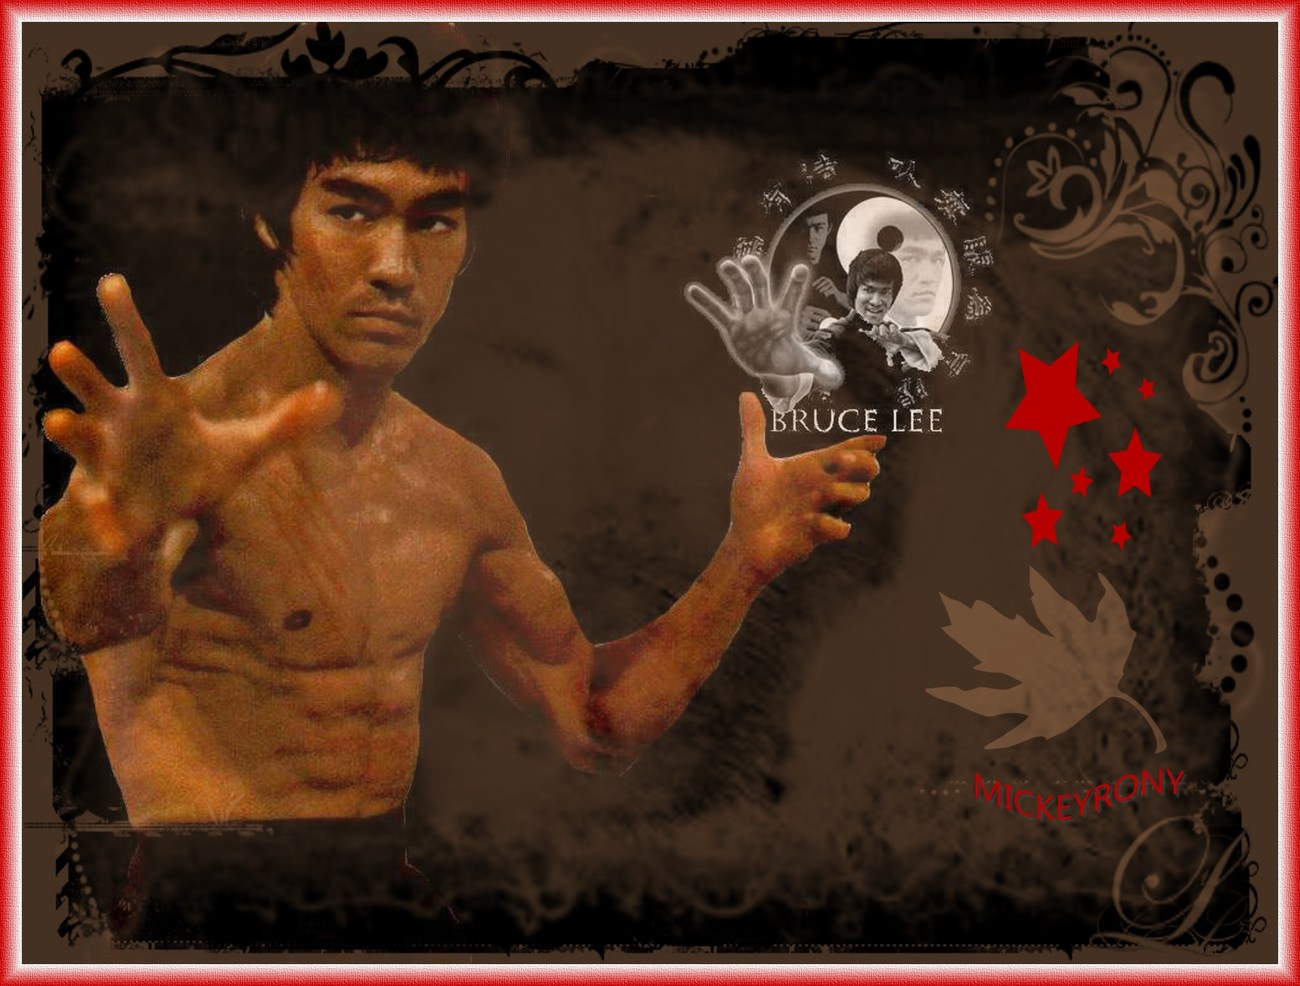 Bruce Lee The legend....